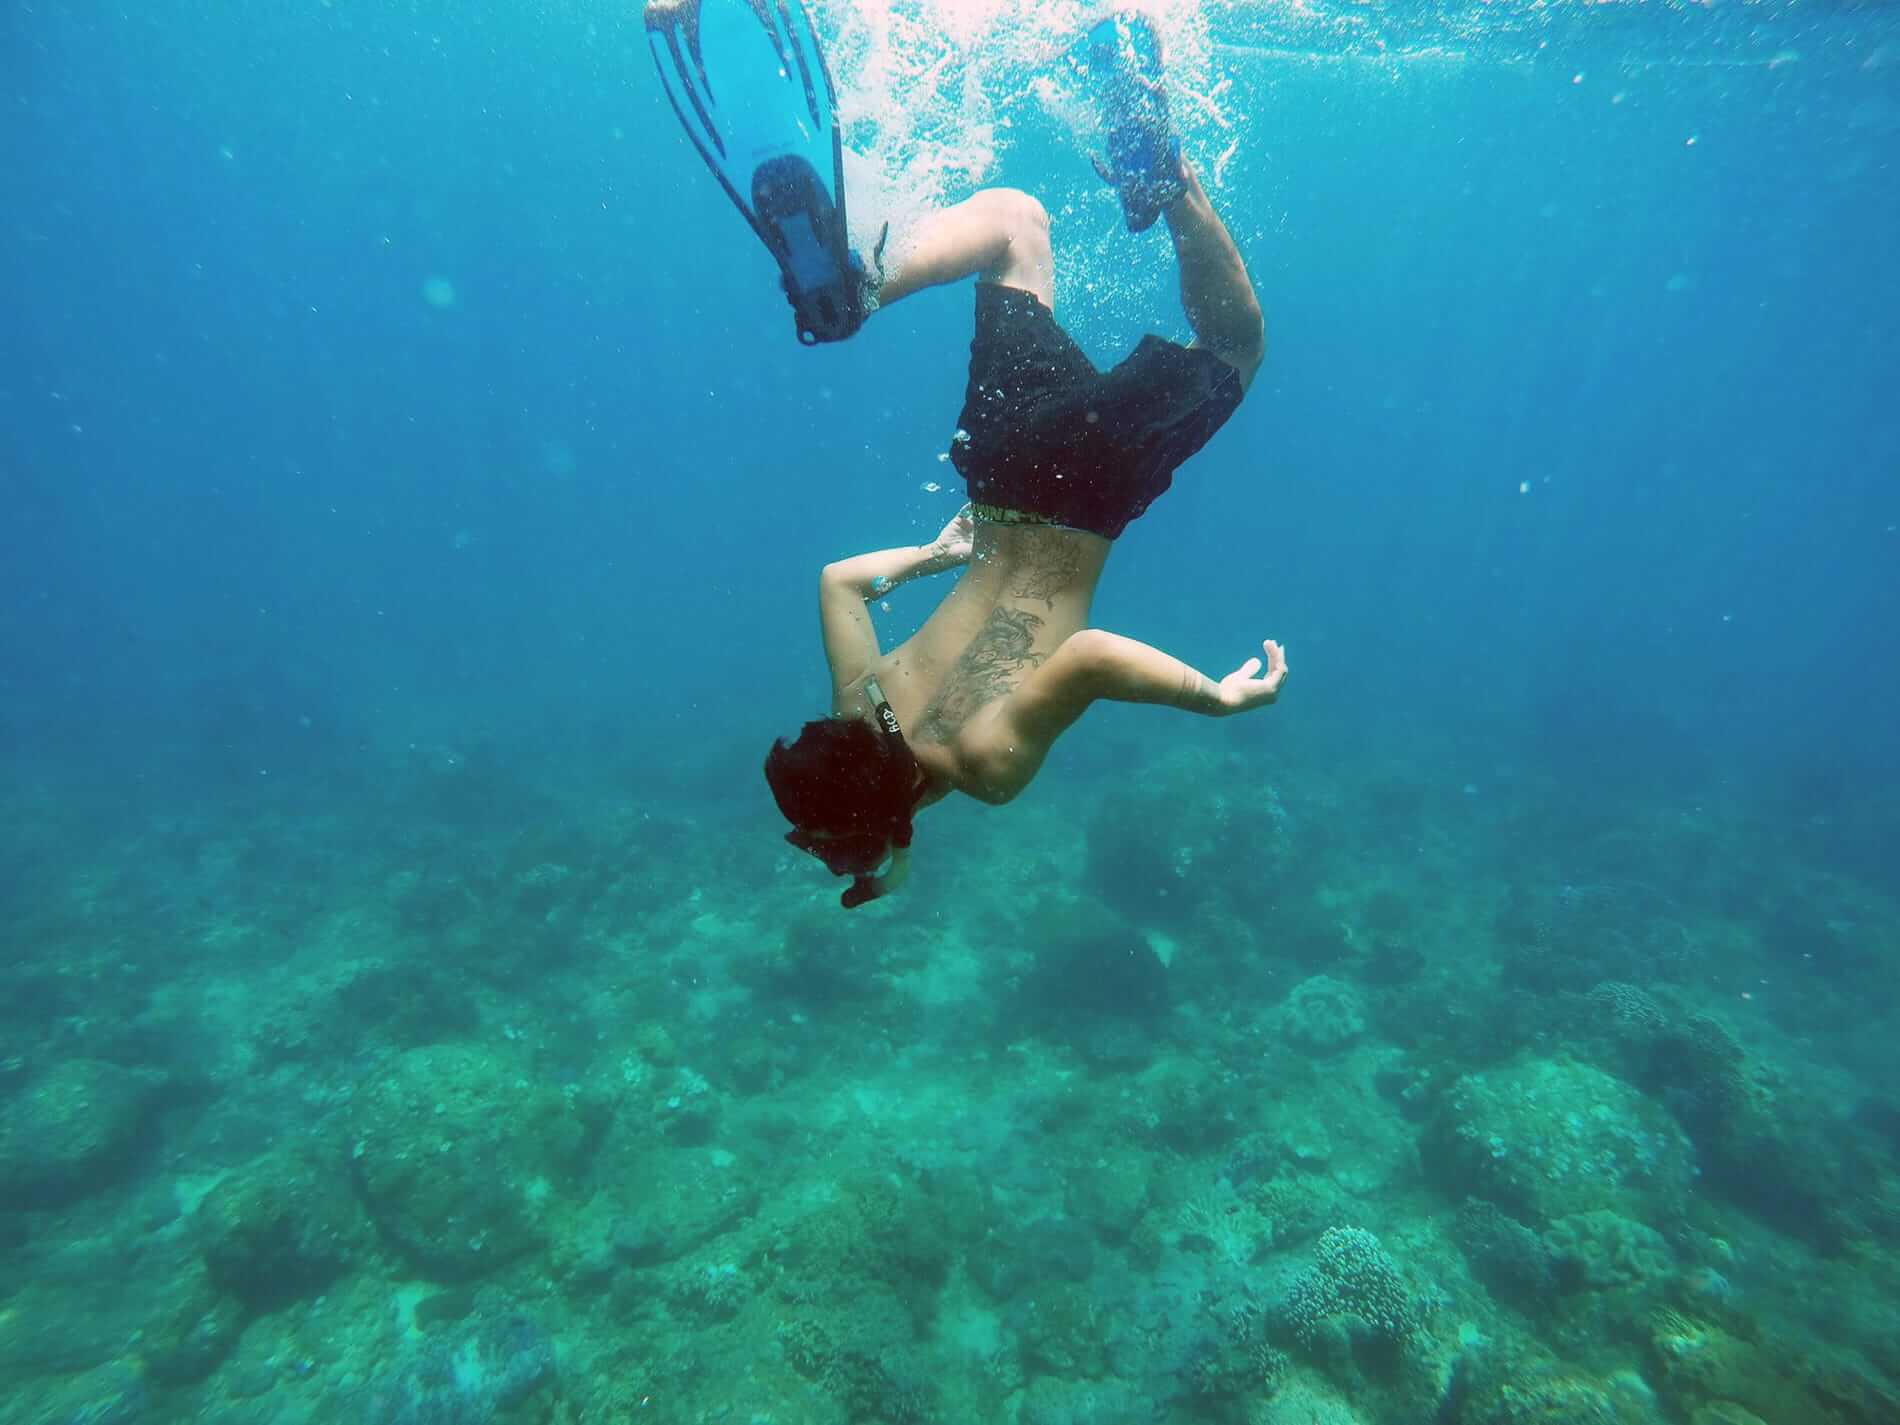 A snorkeller dives under the beautiful ocean of the Cham Islands